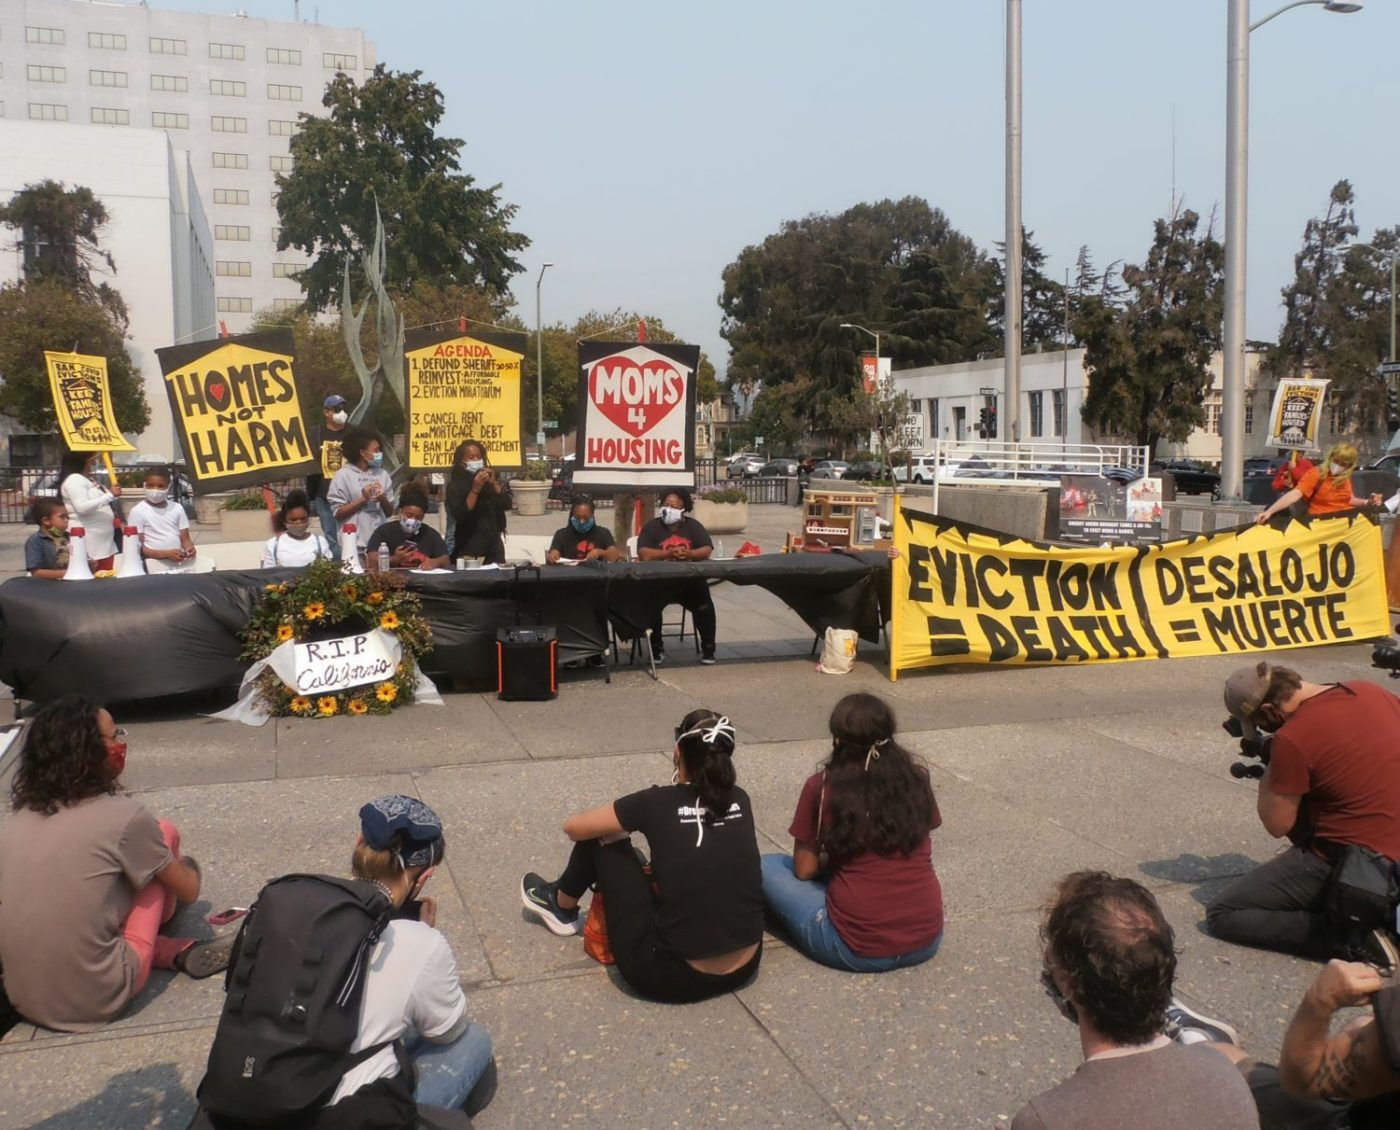 Carroll-Fife-speaks-at-EvictionDeath-rally-at-Alameda-Cty-Board-of-Supervisors-Admin-Bldg-by-Baba-Jahahara-1400x1130, Finally! Baba Jalil will be freed!, Culture Currents